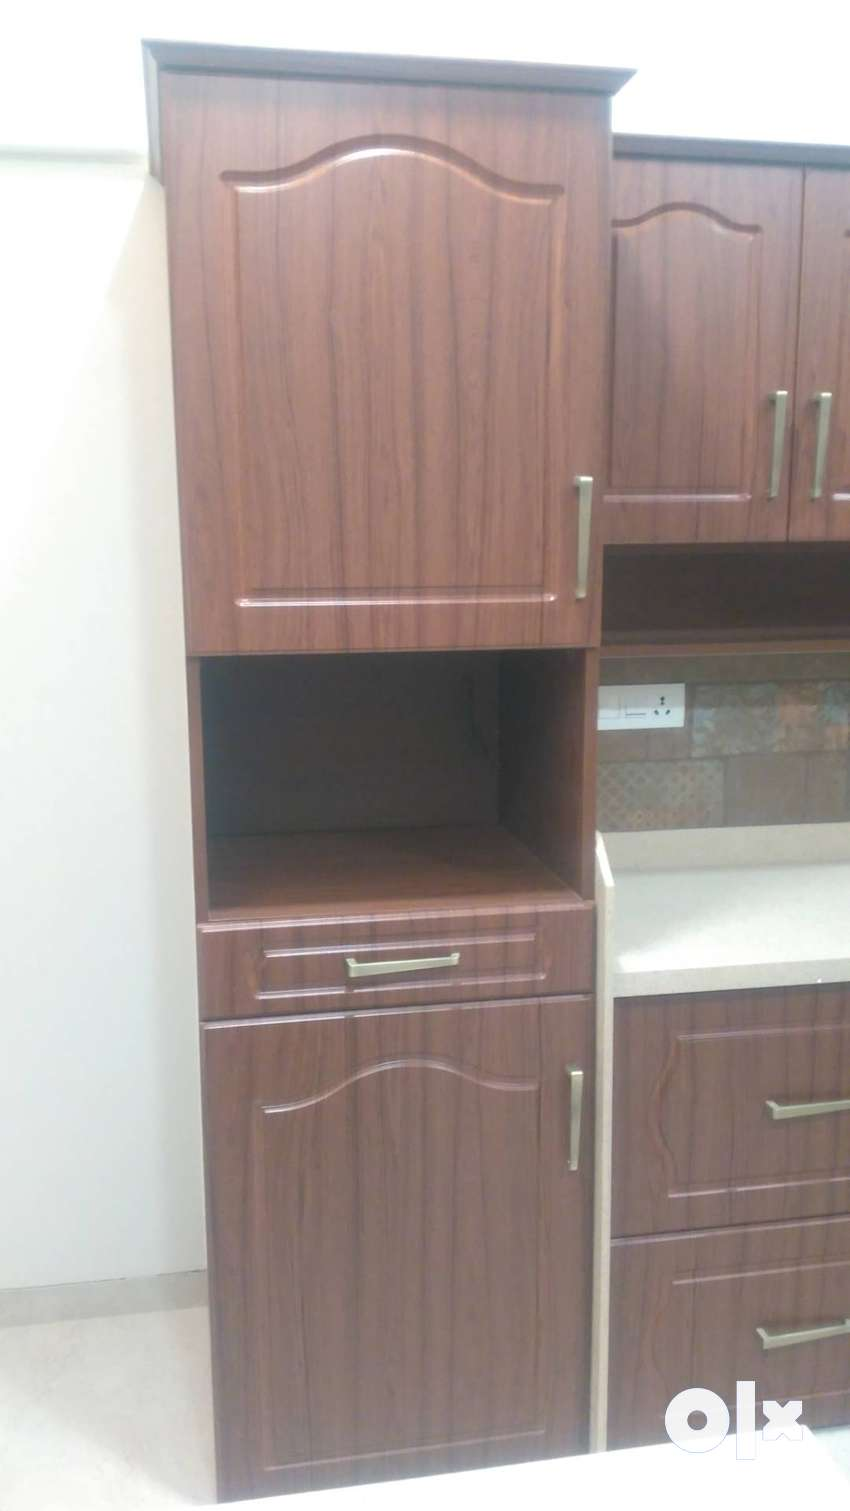 Kitchen trolley servicing - Other Services - 7